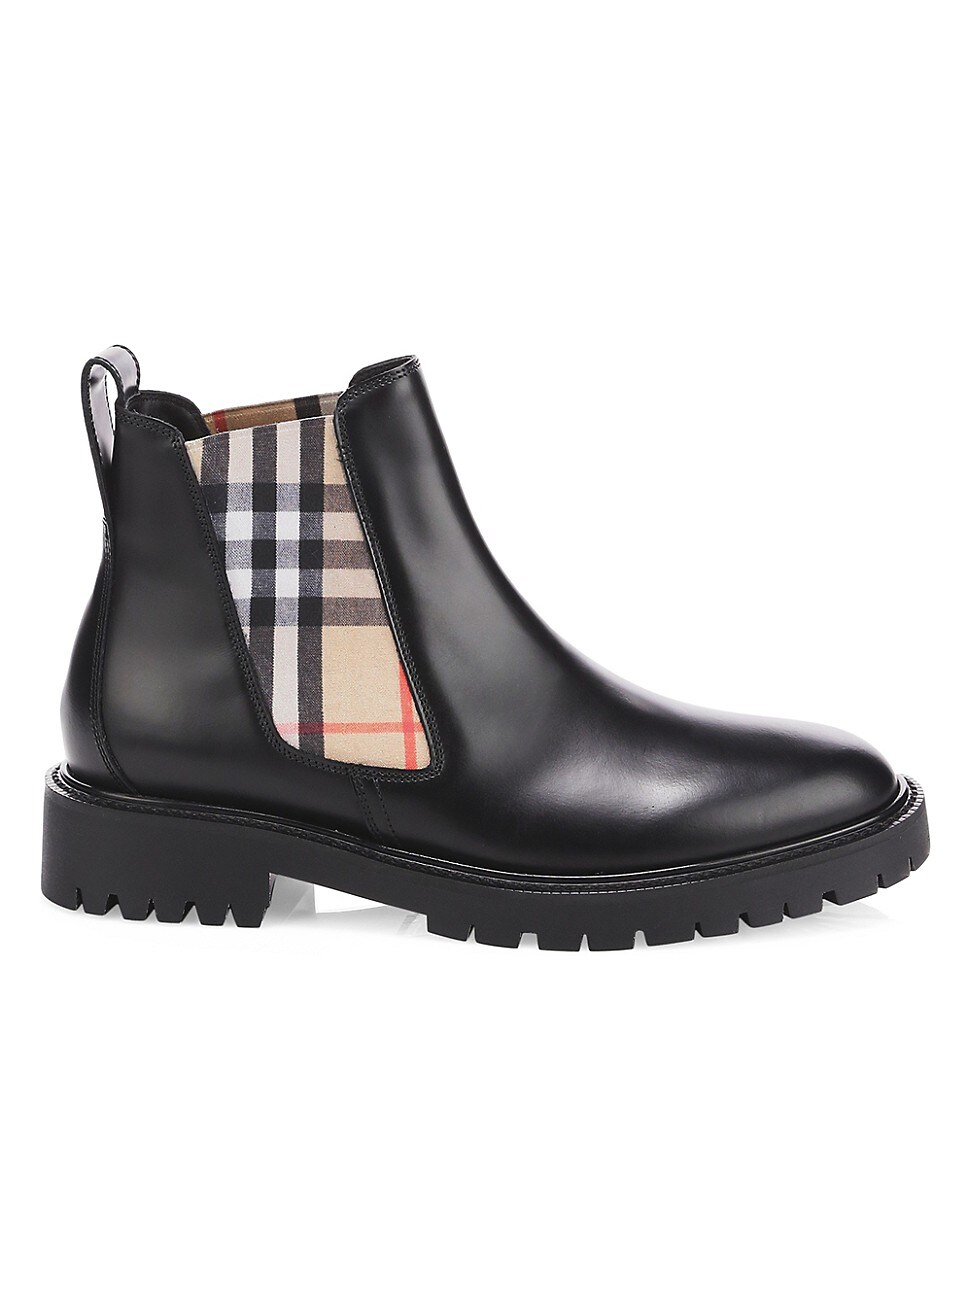 Burberry WOMEN'S VINTAGE CHECK LEATHER CHELSEA BOOTS